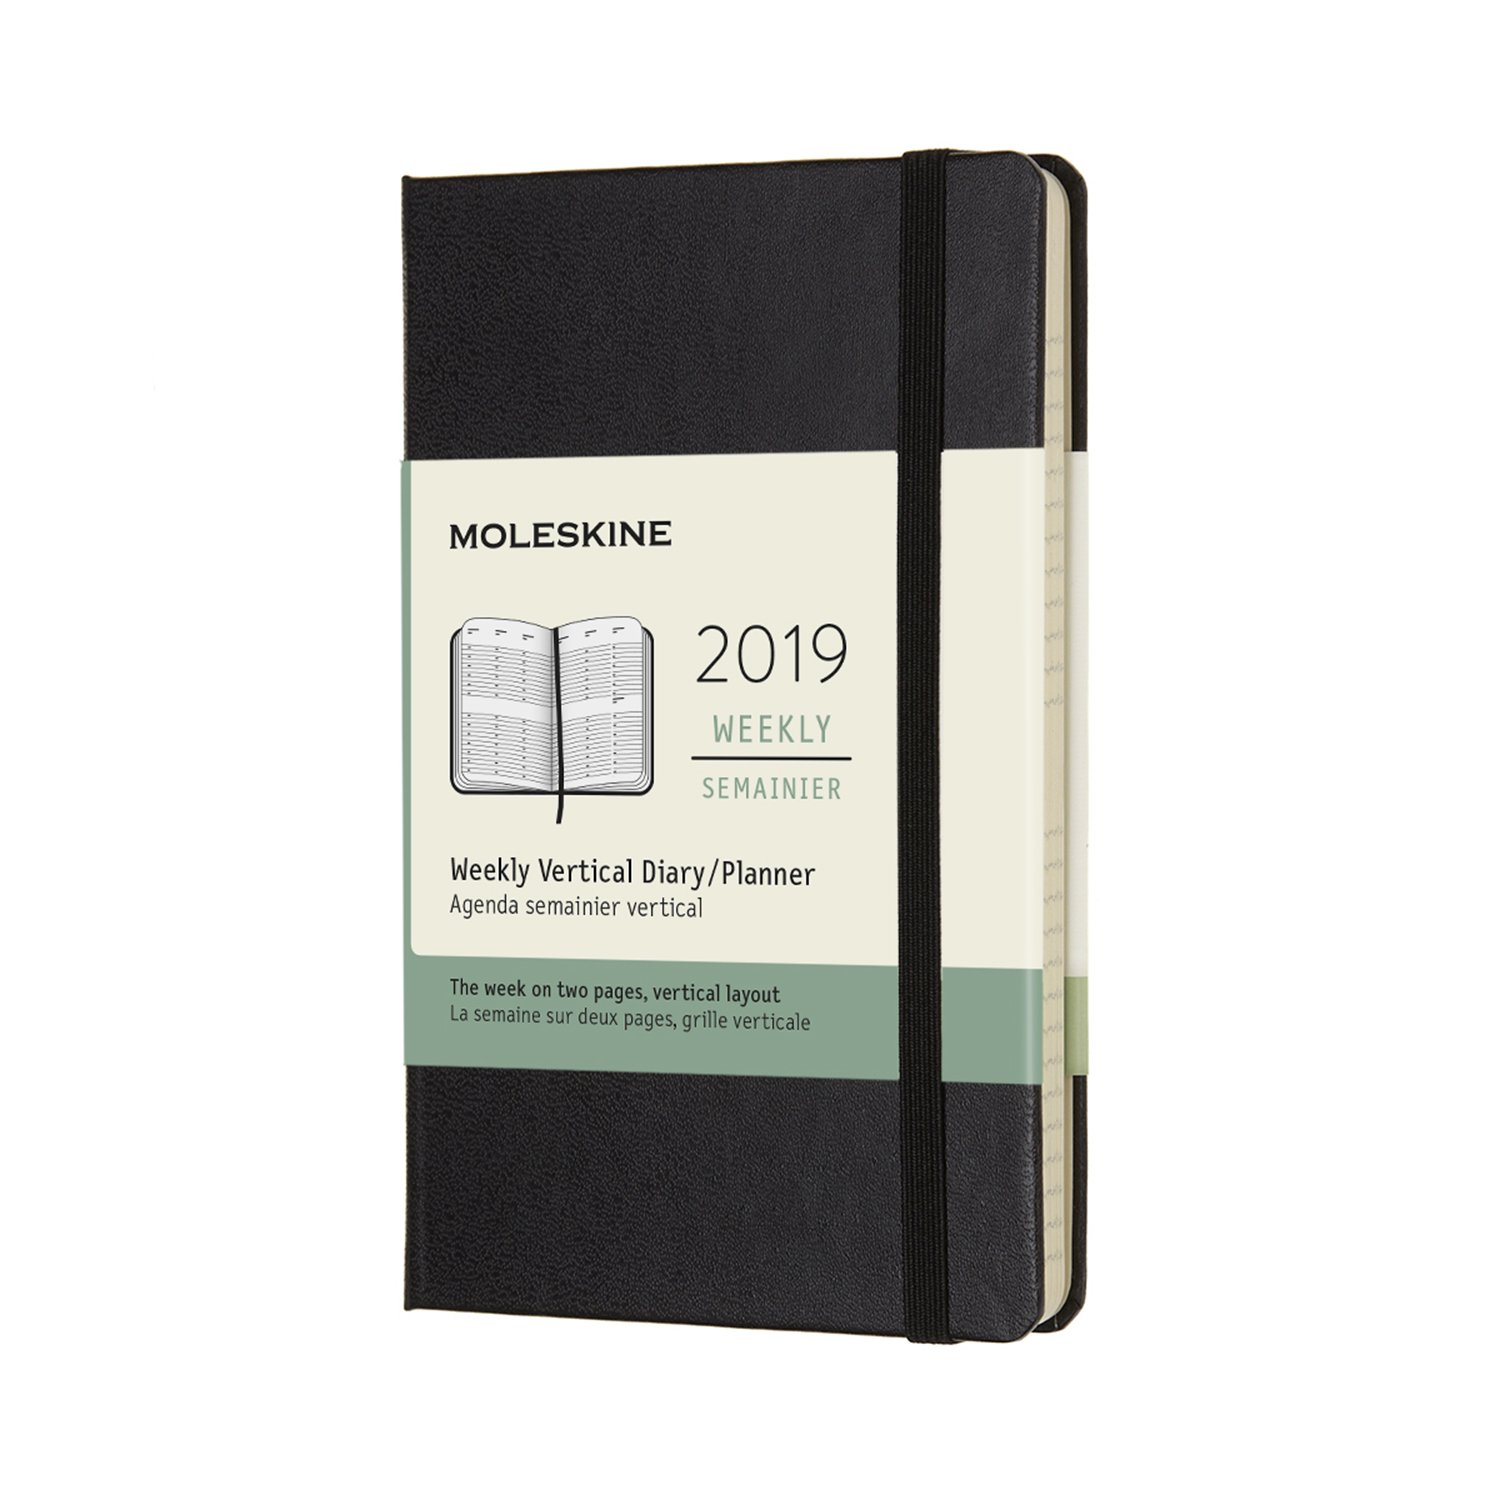 Moleskine Classic Hard Cover 2019 12 Month Weekly Vertical Planner, Pocket Size (3.5 x 5.5) Black - Weekly Planner for Students & Professionals, for Organizing and Planning